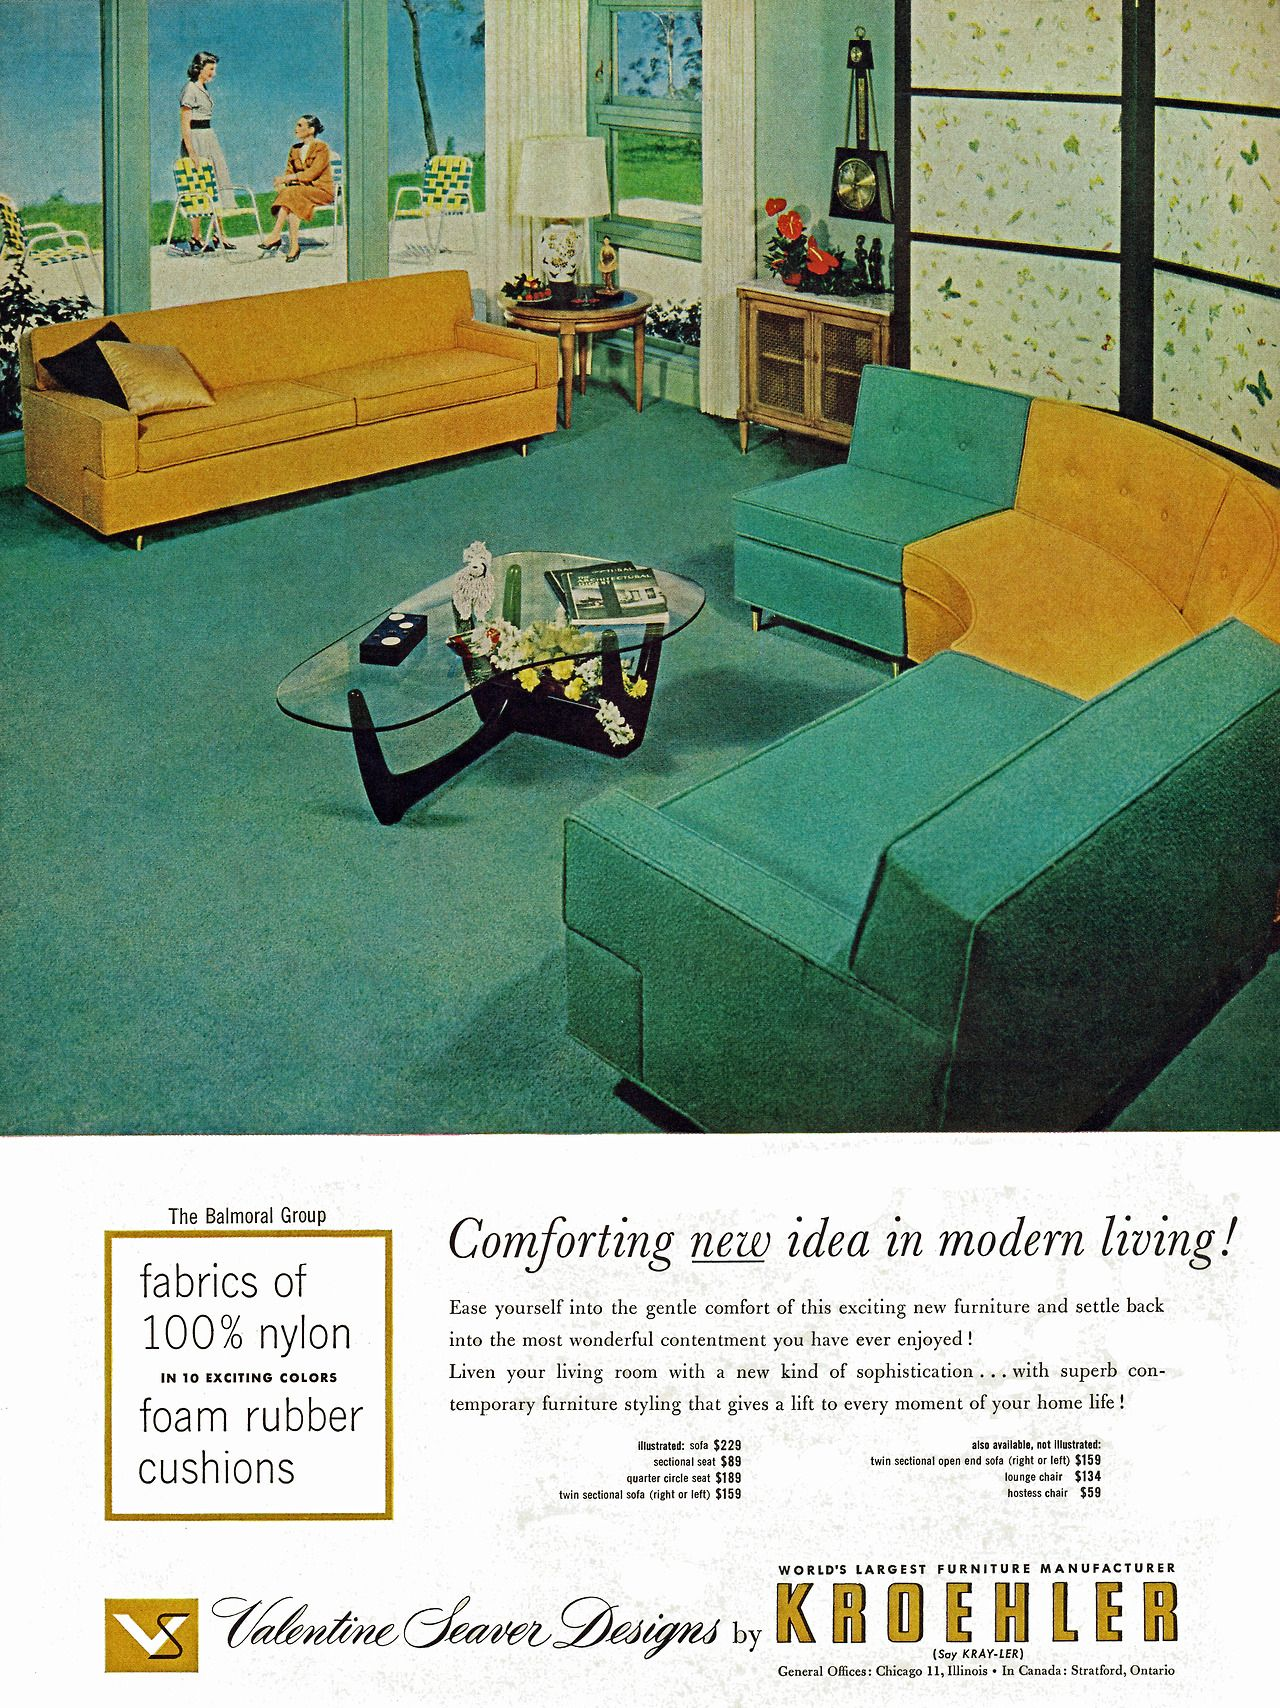 A stunning sectional couch from Kroehler in turquoise and yellow...